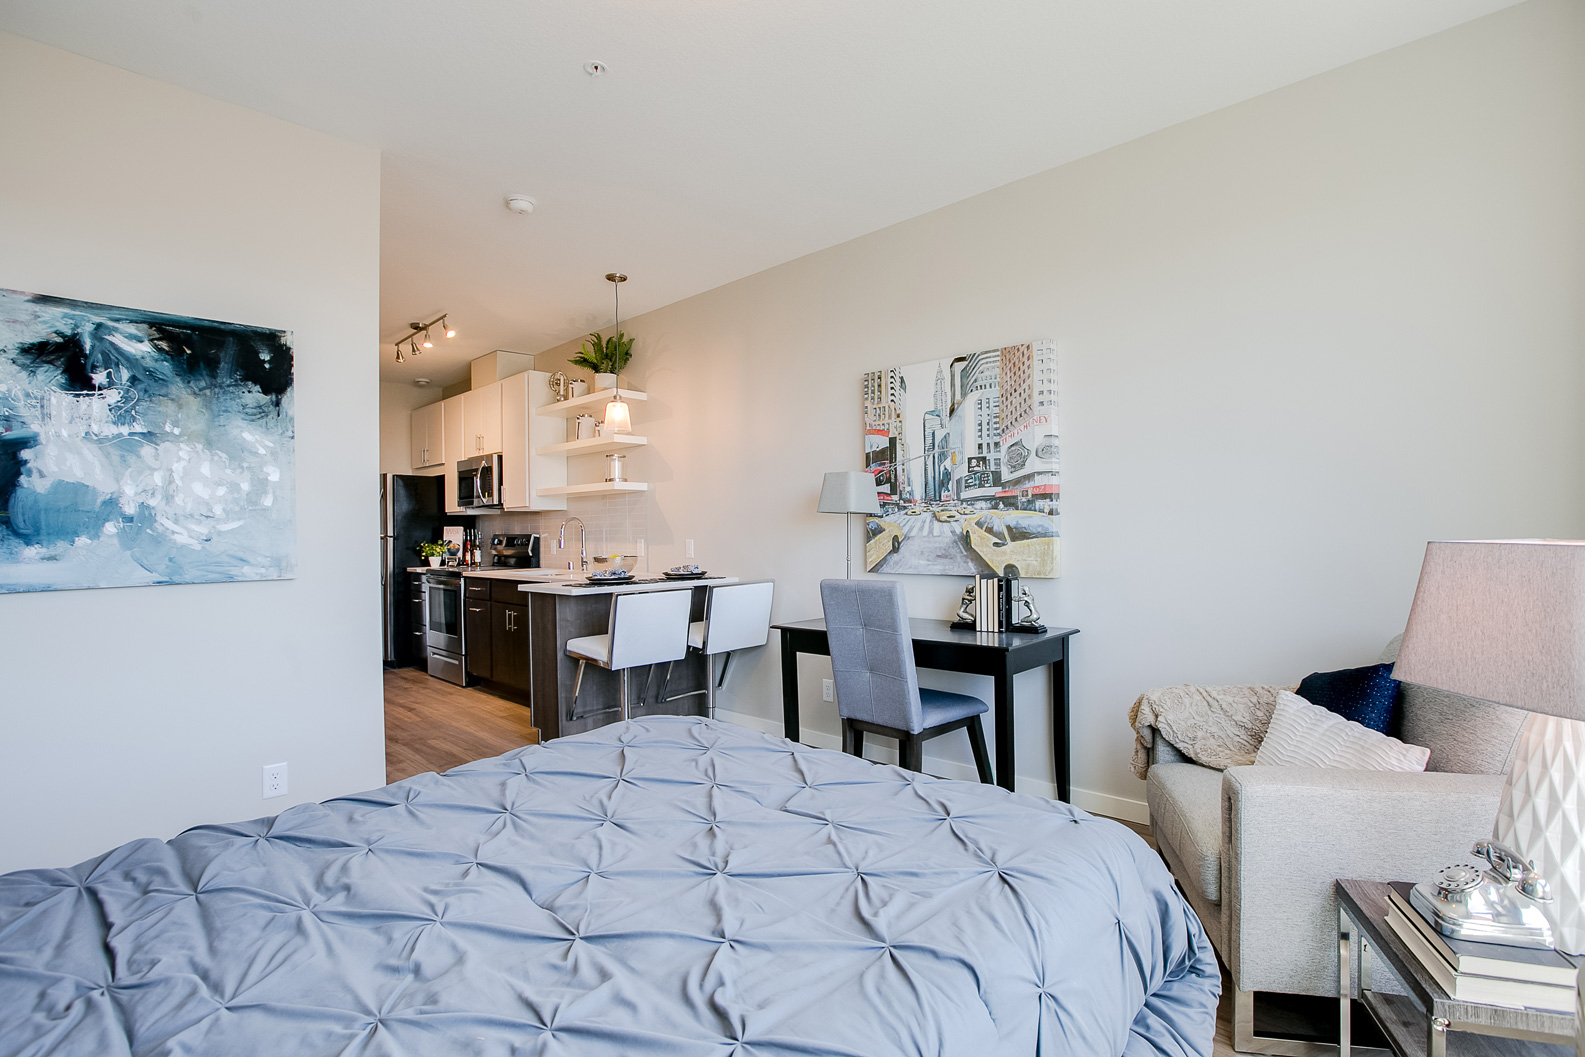 Small Spaces BIG Design!  Lionheart made great use of space in this Minneapolis studio apartment, Amazing Stages in Small Spaces #3503.403 ~ Staged by Lionheart